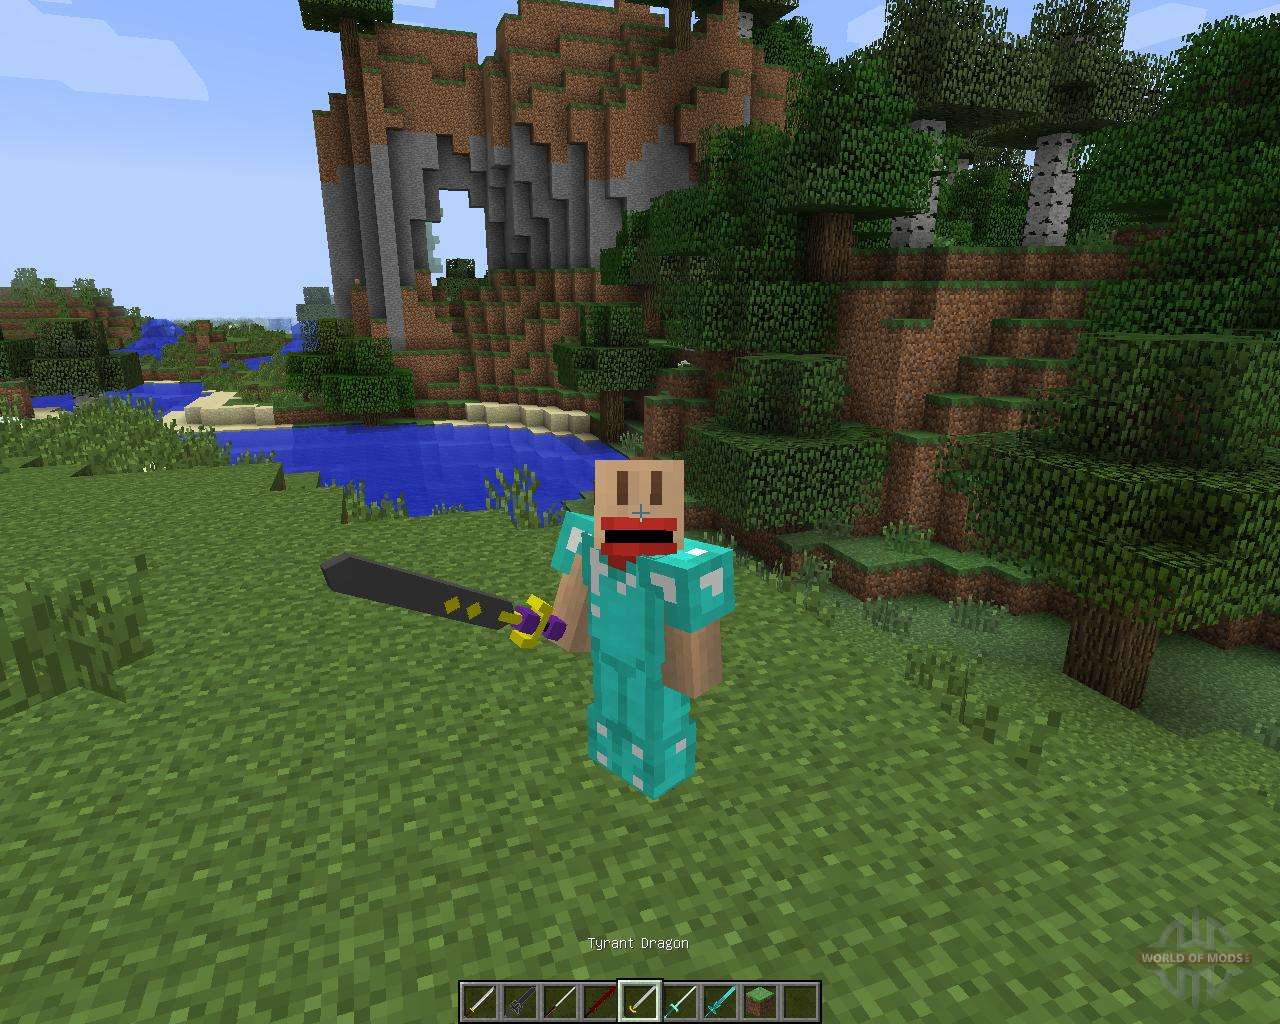 minecraft 1.7.10 how to download call to battle mod